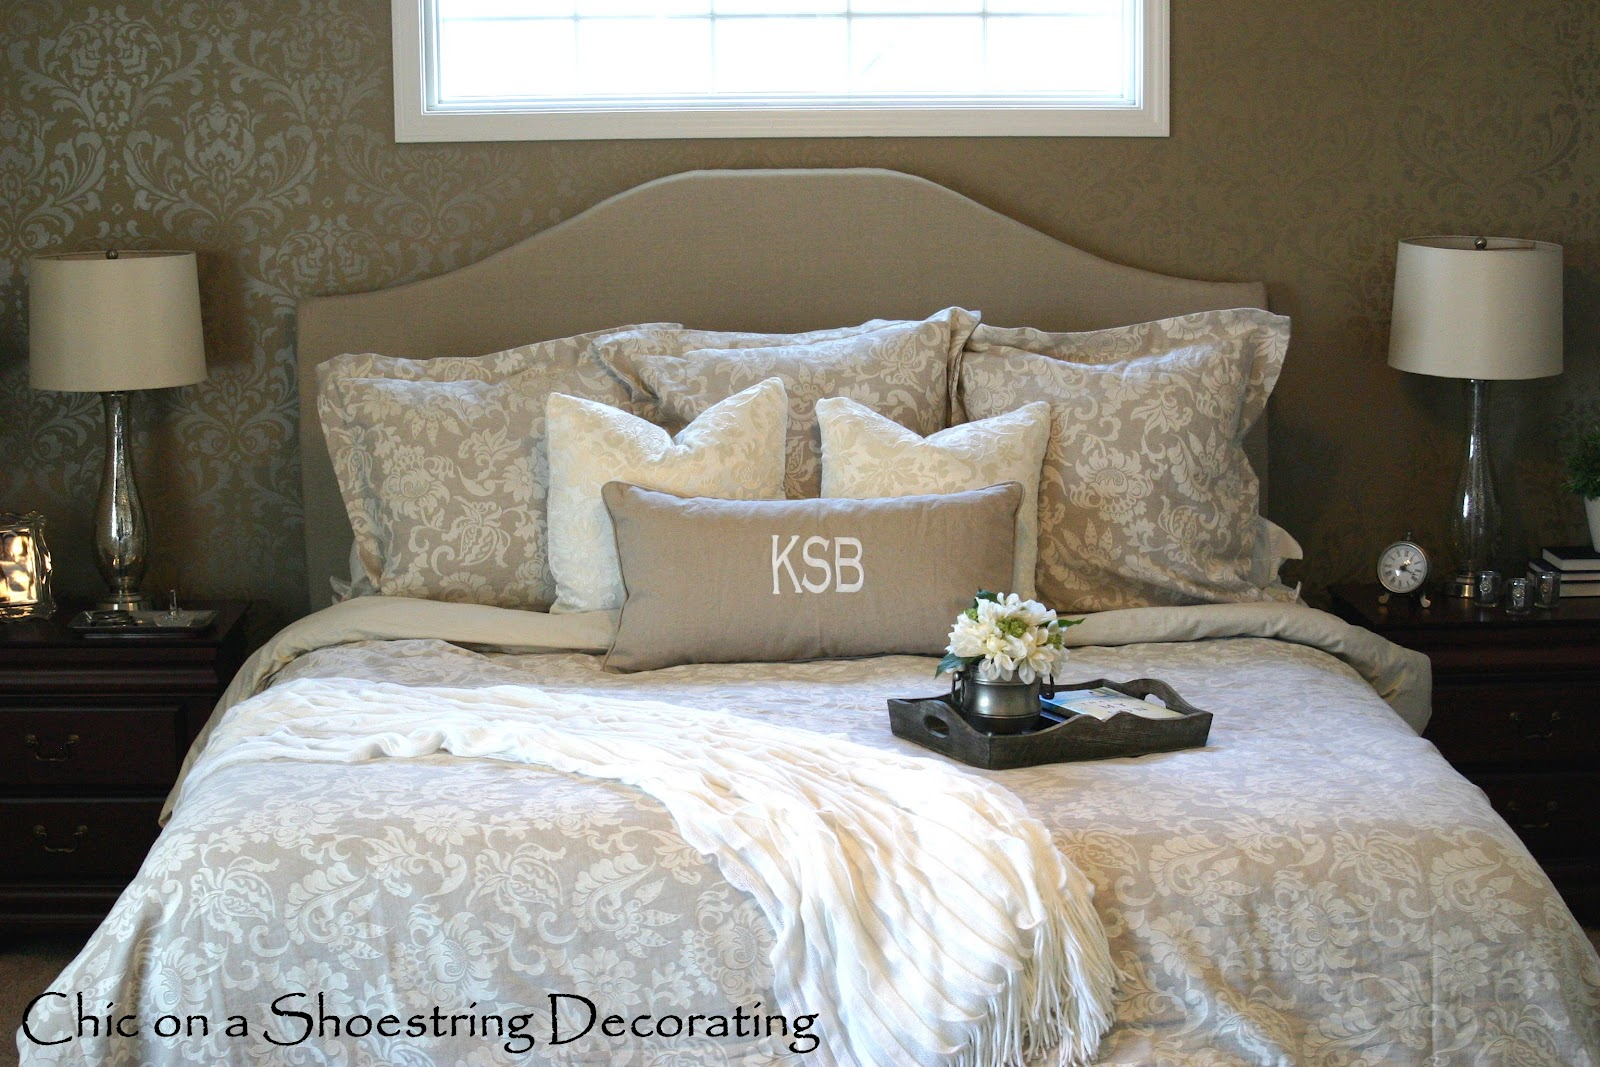 upholstered headboards in gray with floral bedding before the floral wallpaper for bedroom decor ideas